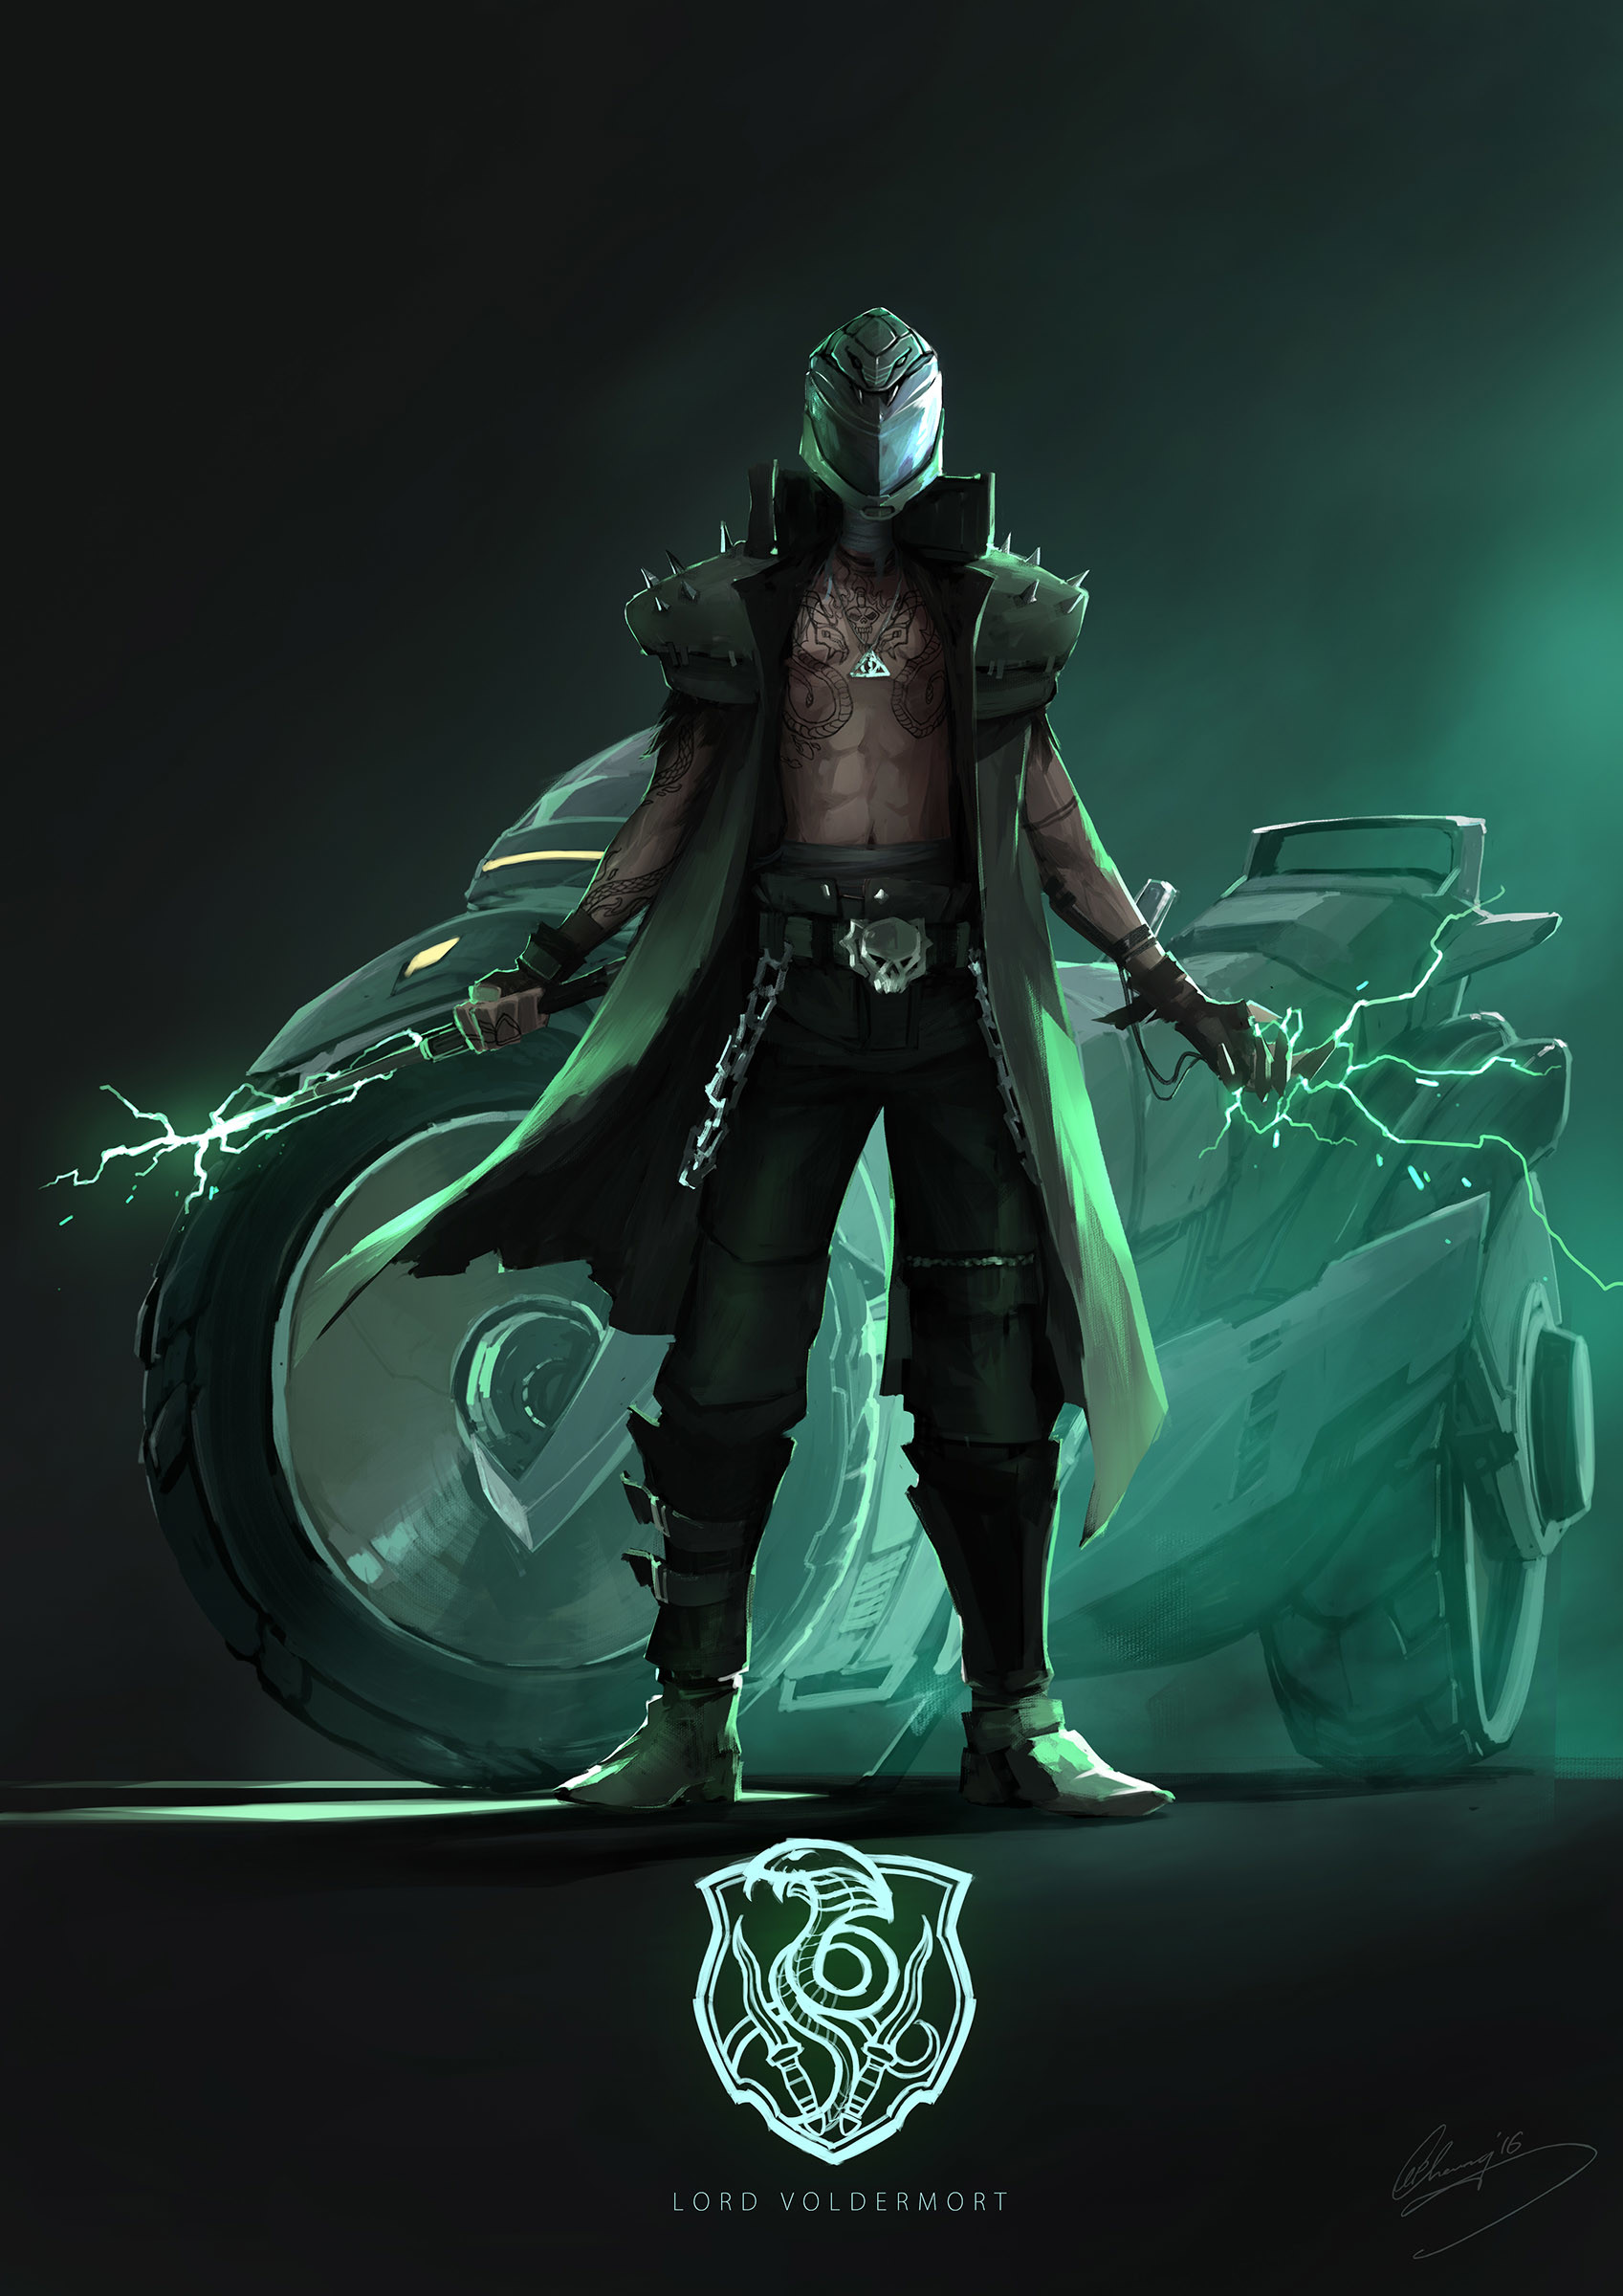 Lap pun cheung gangs of hogwarts slytherin lord voldermort online